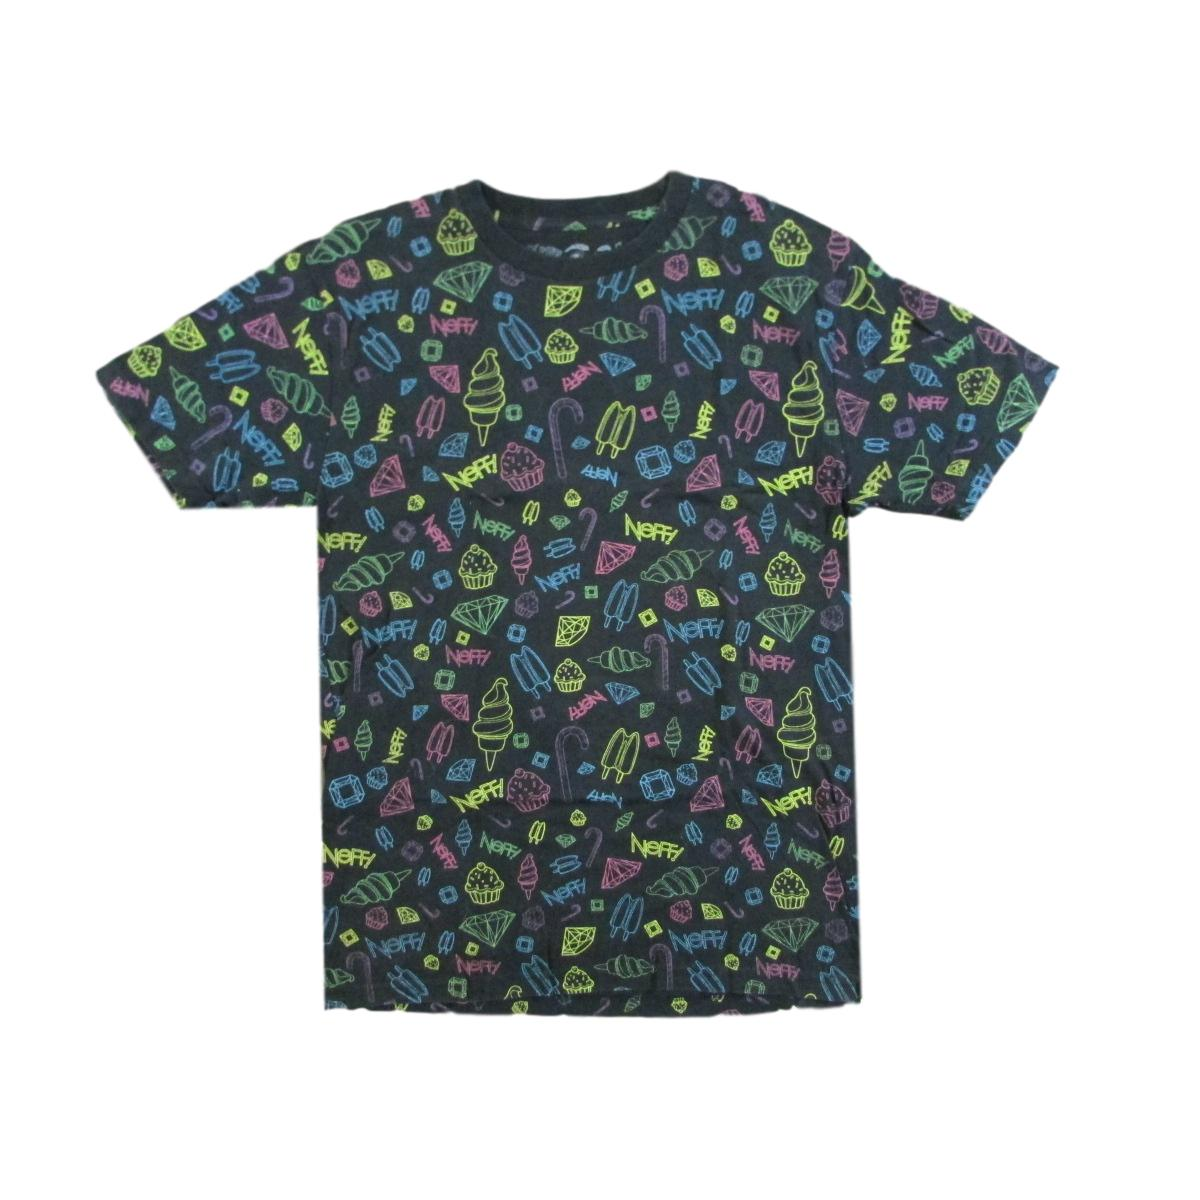 Neff - All Over Ice Cream & Candy T-Shirt Sz L